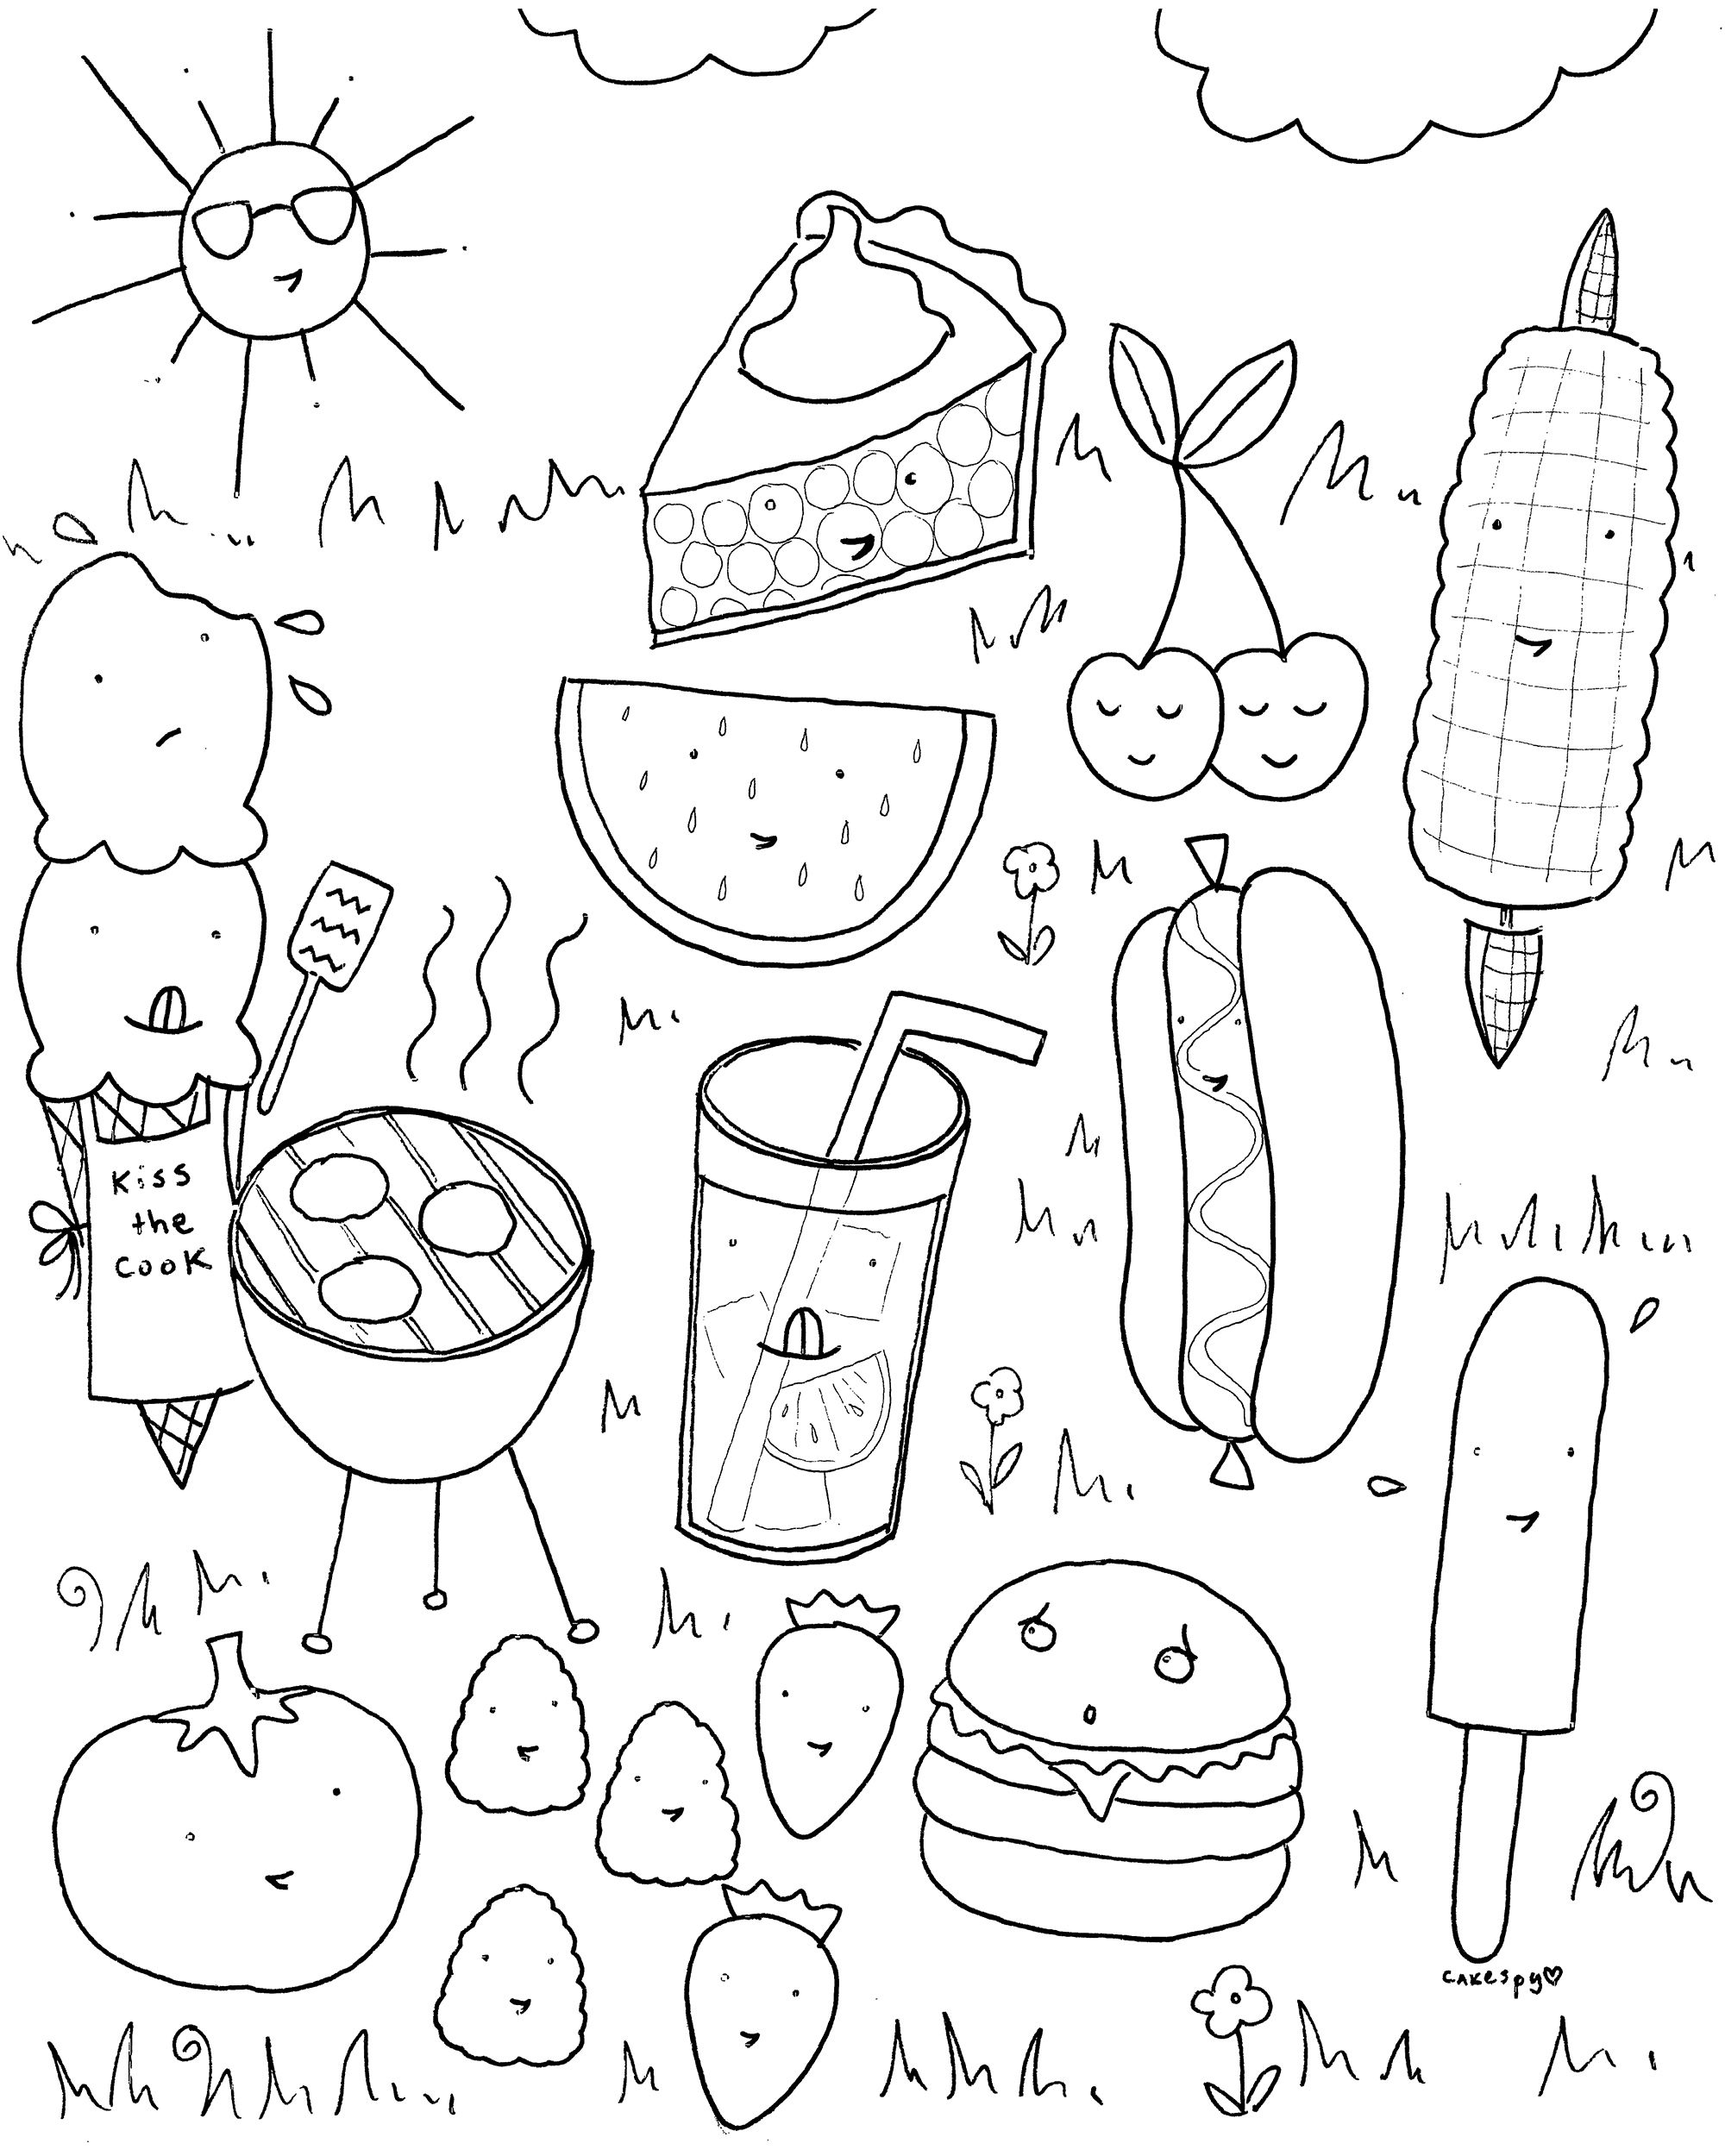 FREE Downloadable Summer Fun Coloring Book Pages | Summer ...